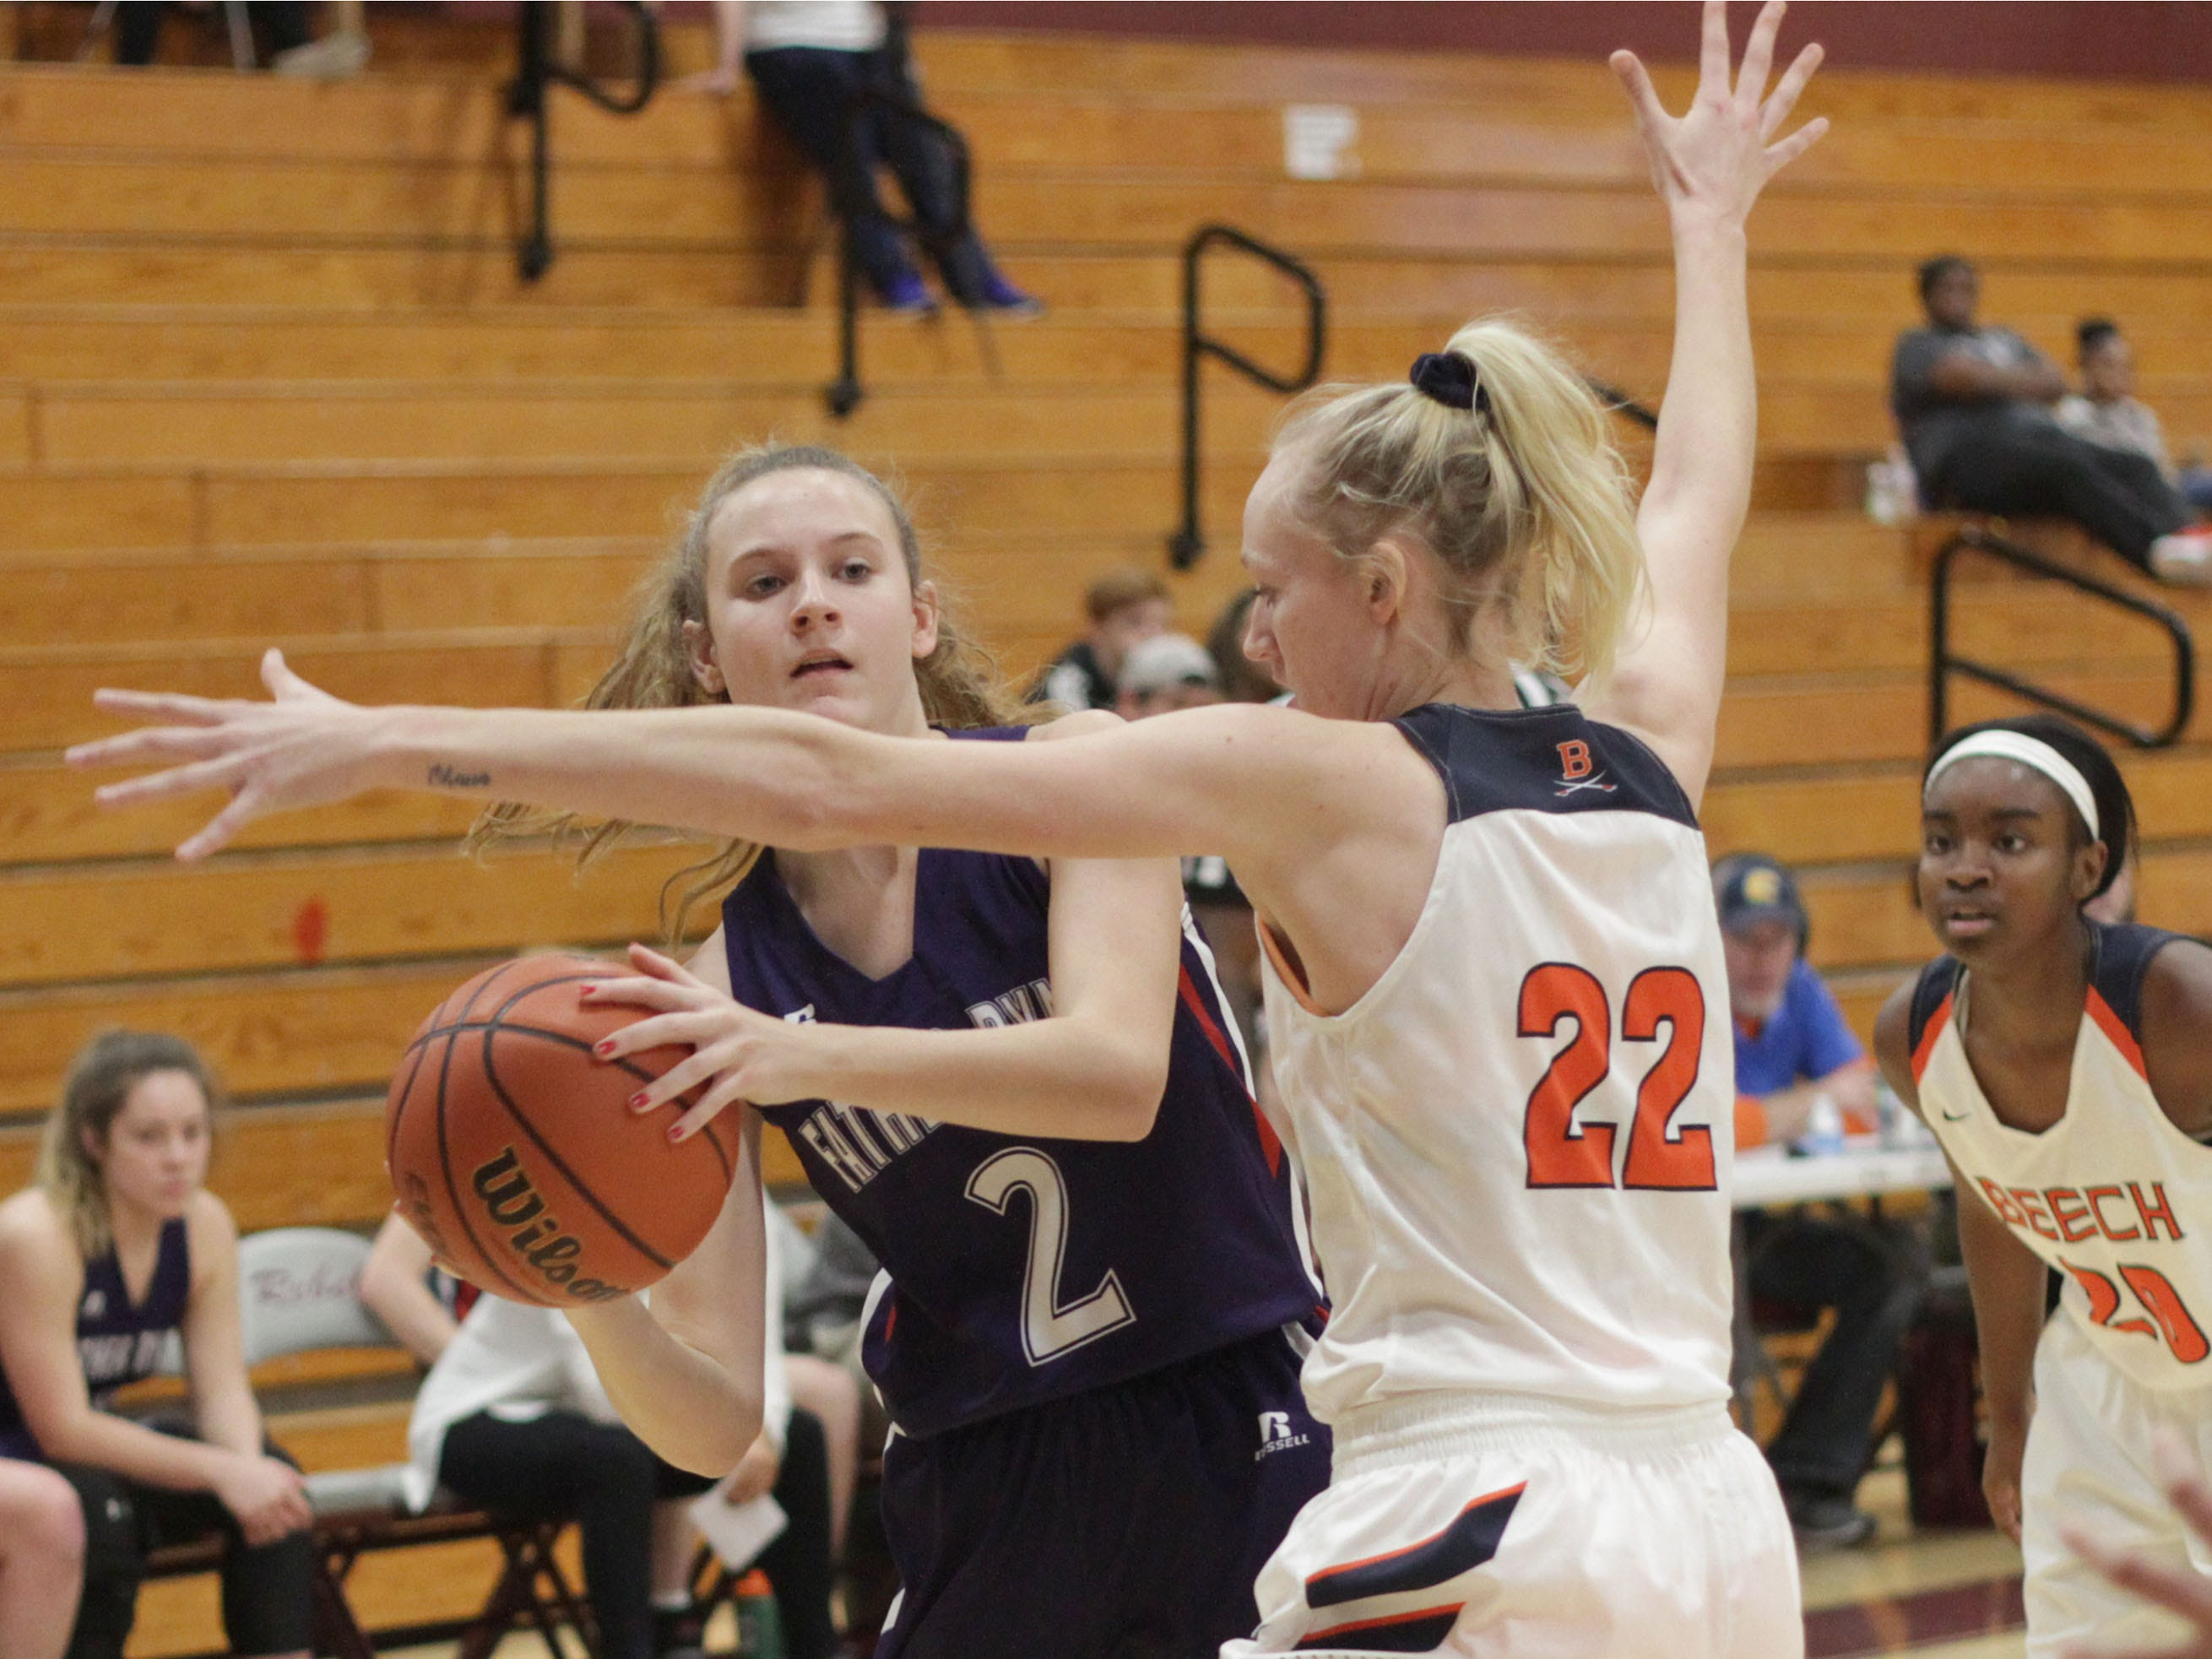 Father Ryan's Sydnee Clunan is guarded tightly by Beech's Kendra Mueller on Saturday, December 29, 2018.